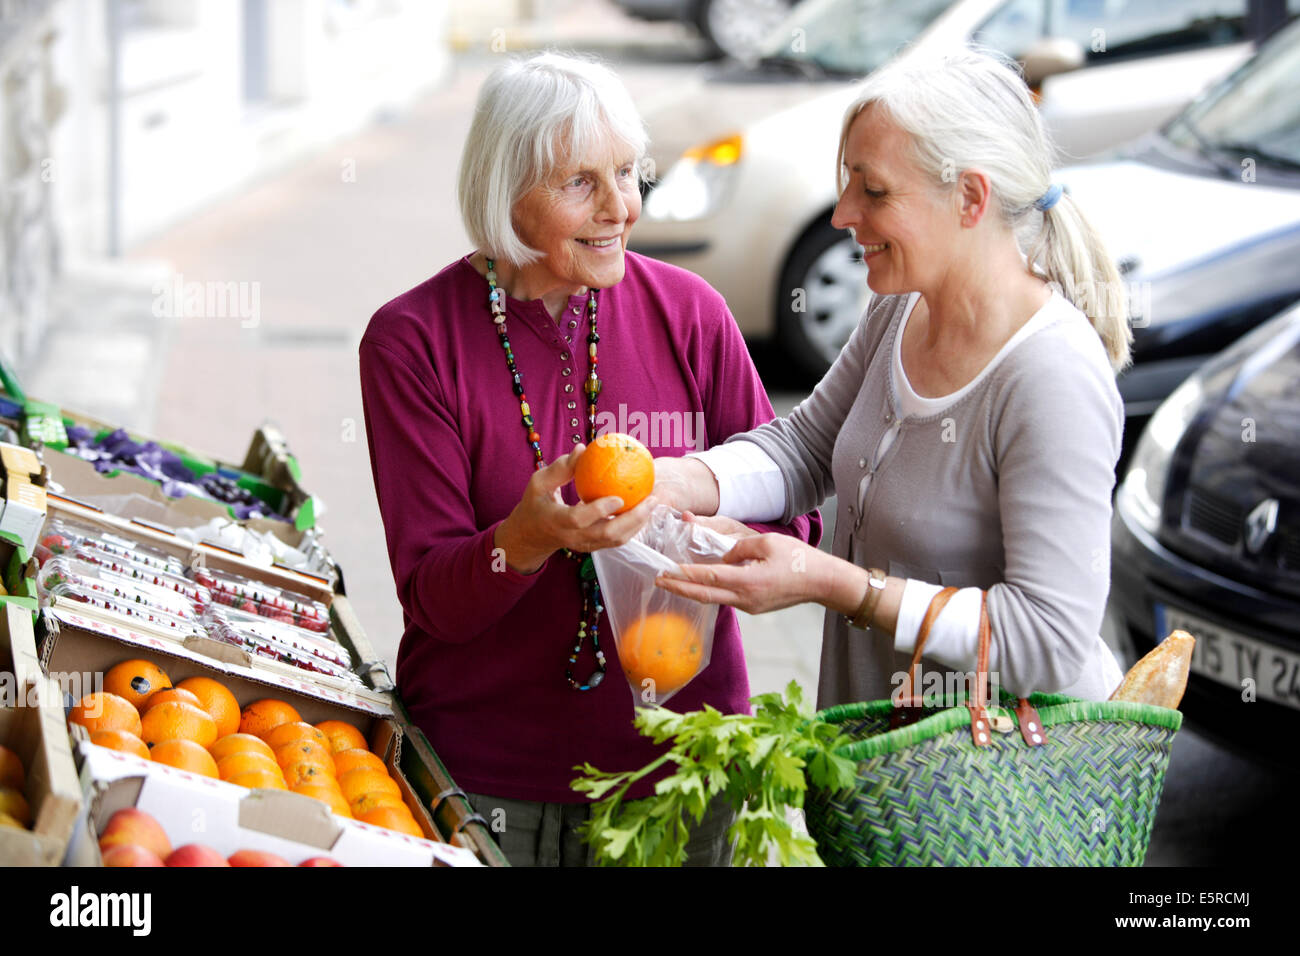 Woman Of The Year Stock Photos & Woman Of The Year Stock Images - Alamy